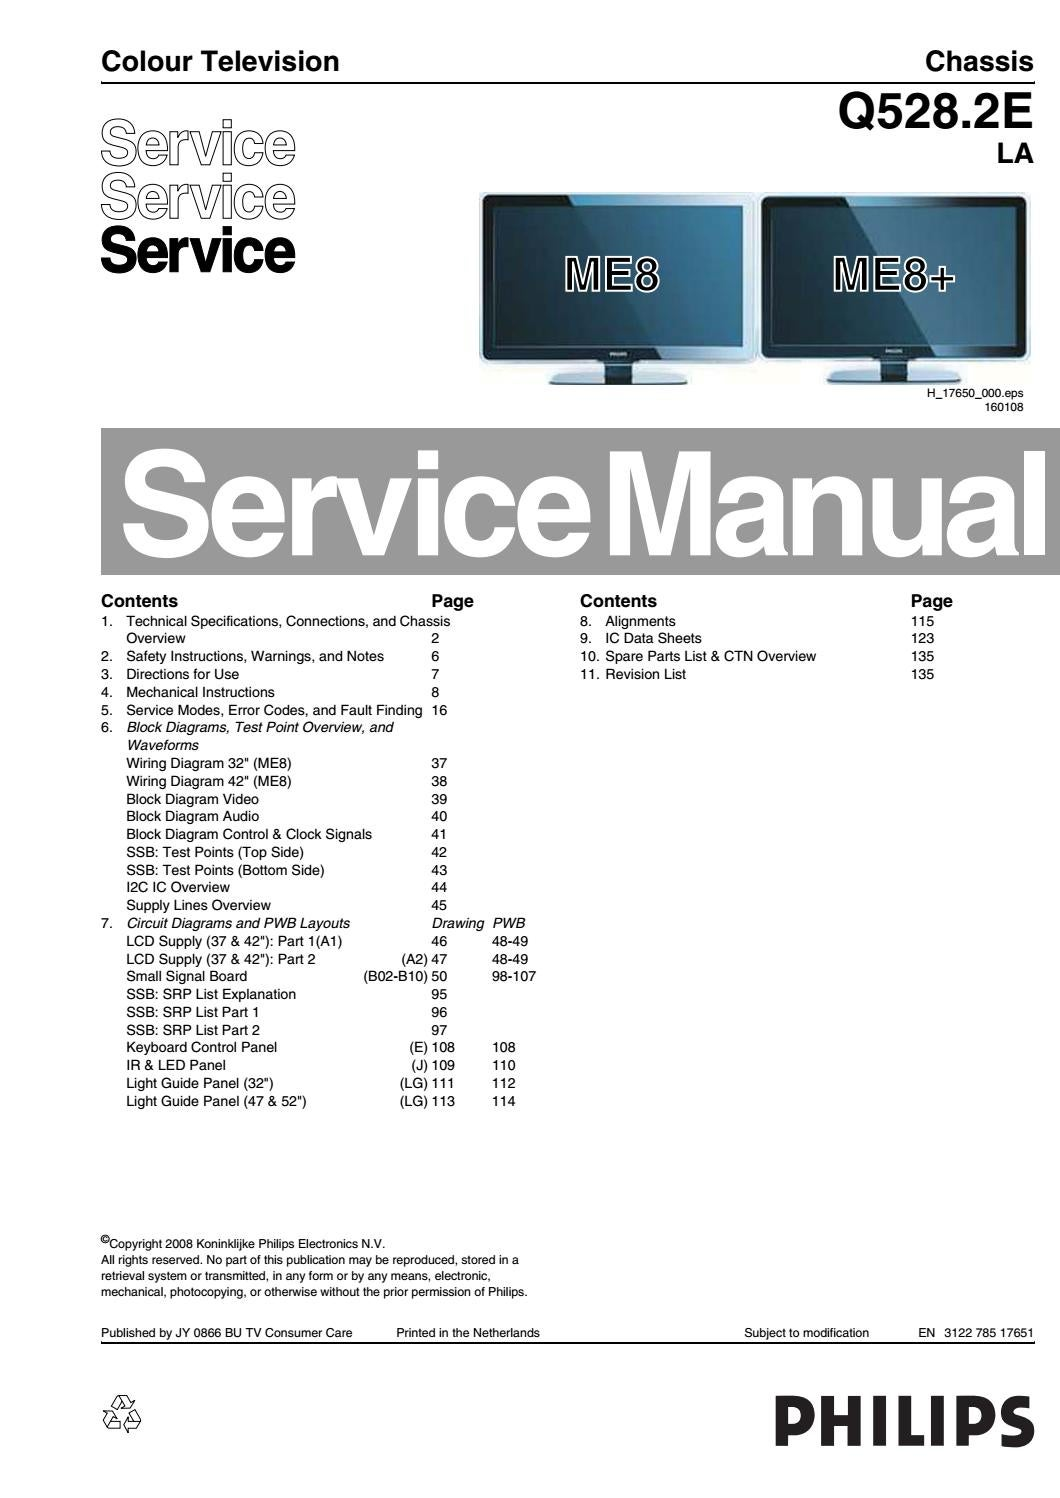 Manual De Servi U00e7o Tv Philips 42pfl7603d 12 Chassis Q528 2e